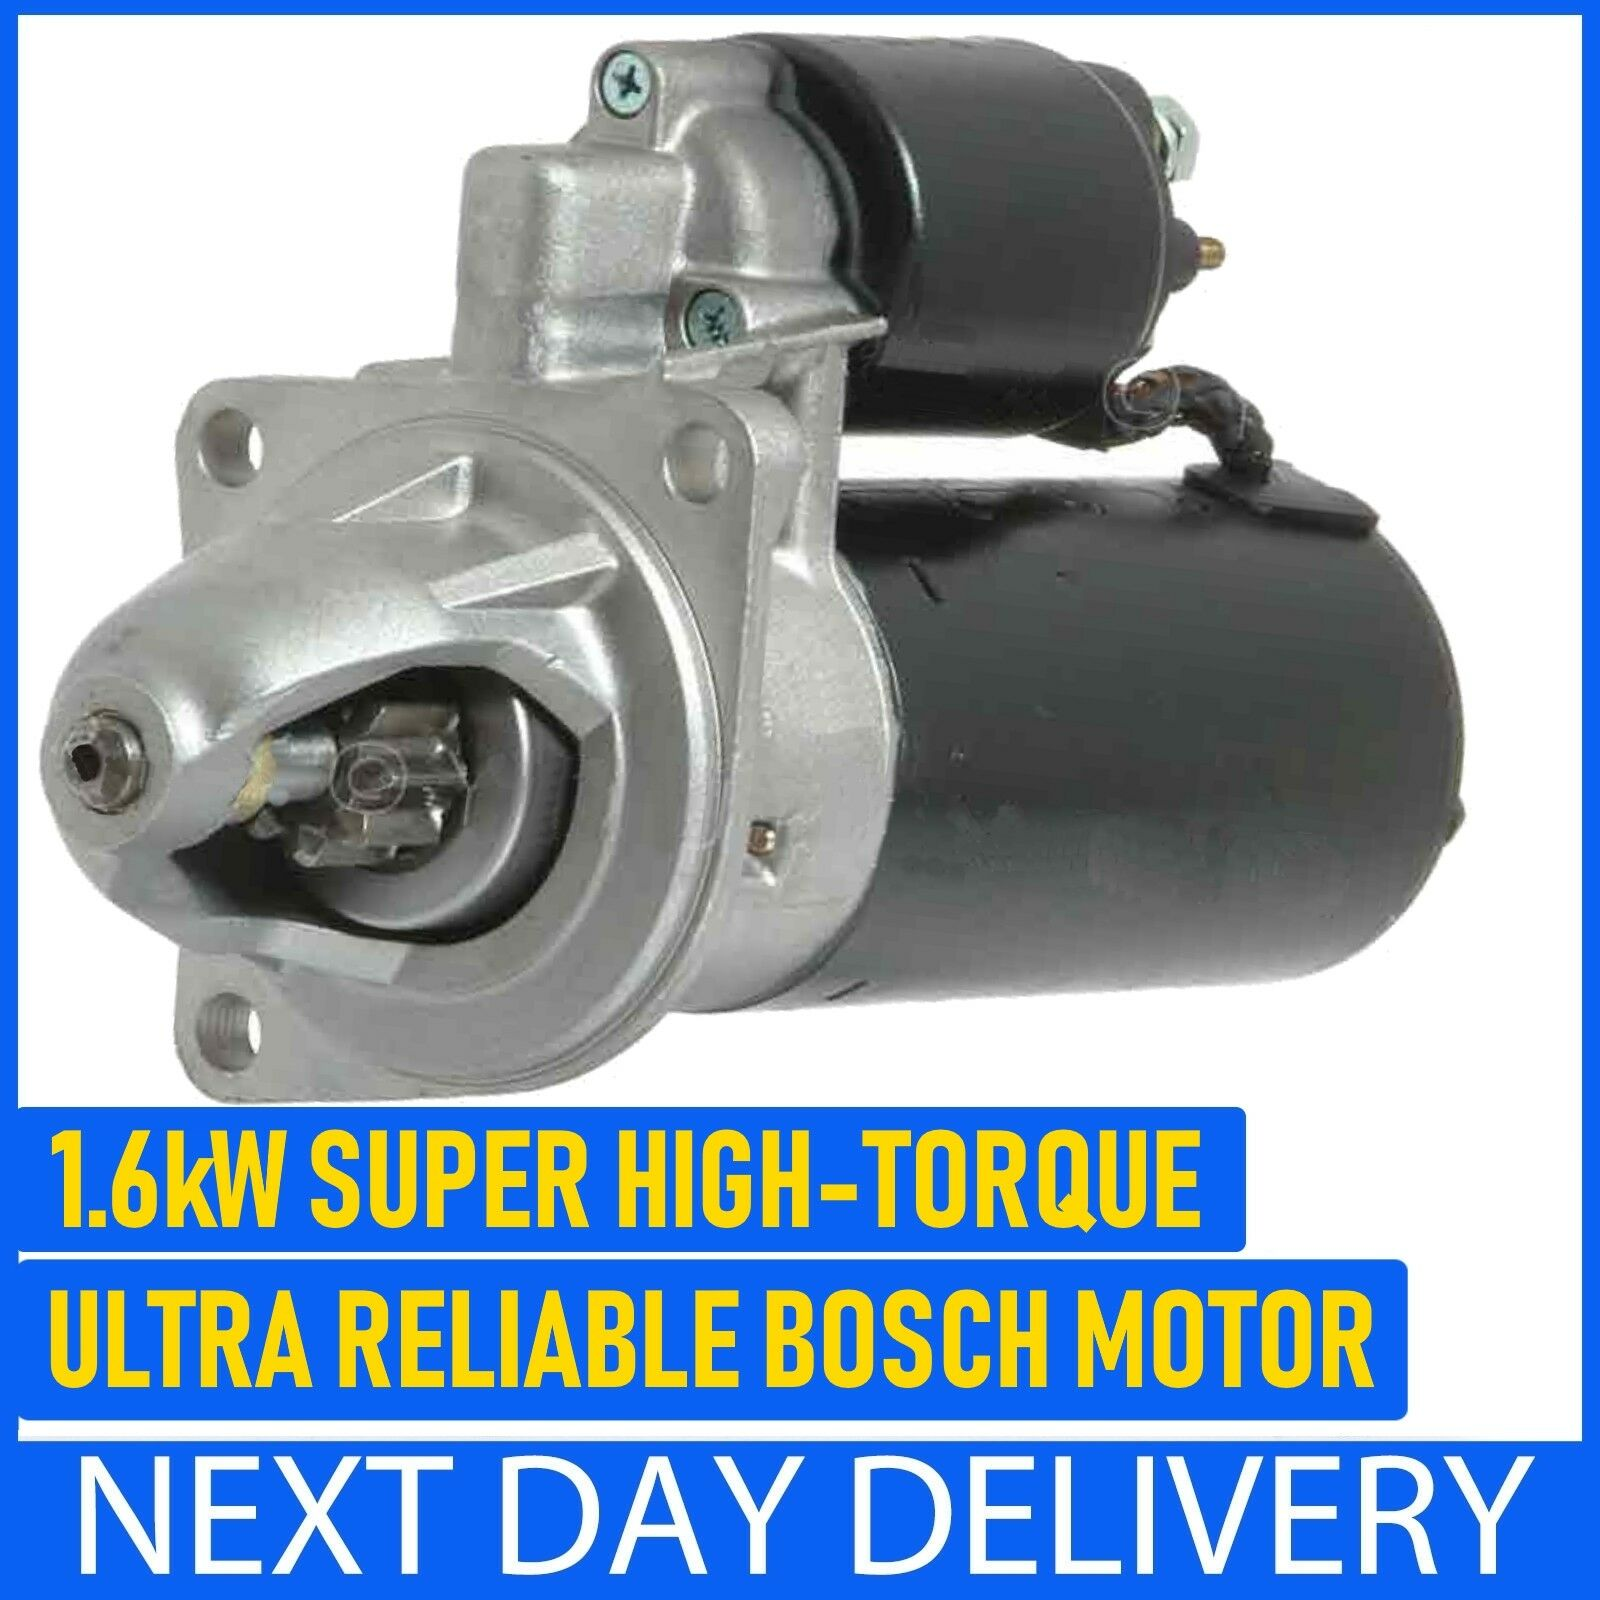 Brisca F2 Stock Car Ford Pinto High Torque Starter Motor 16kw 1 Of 3free Shipping